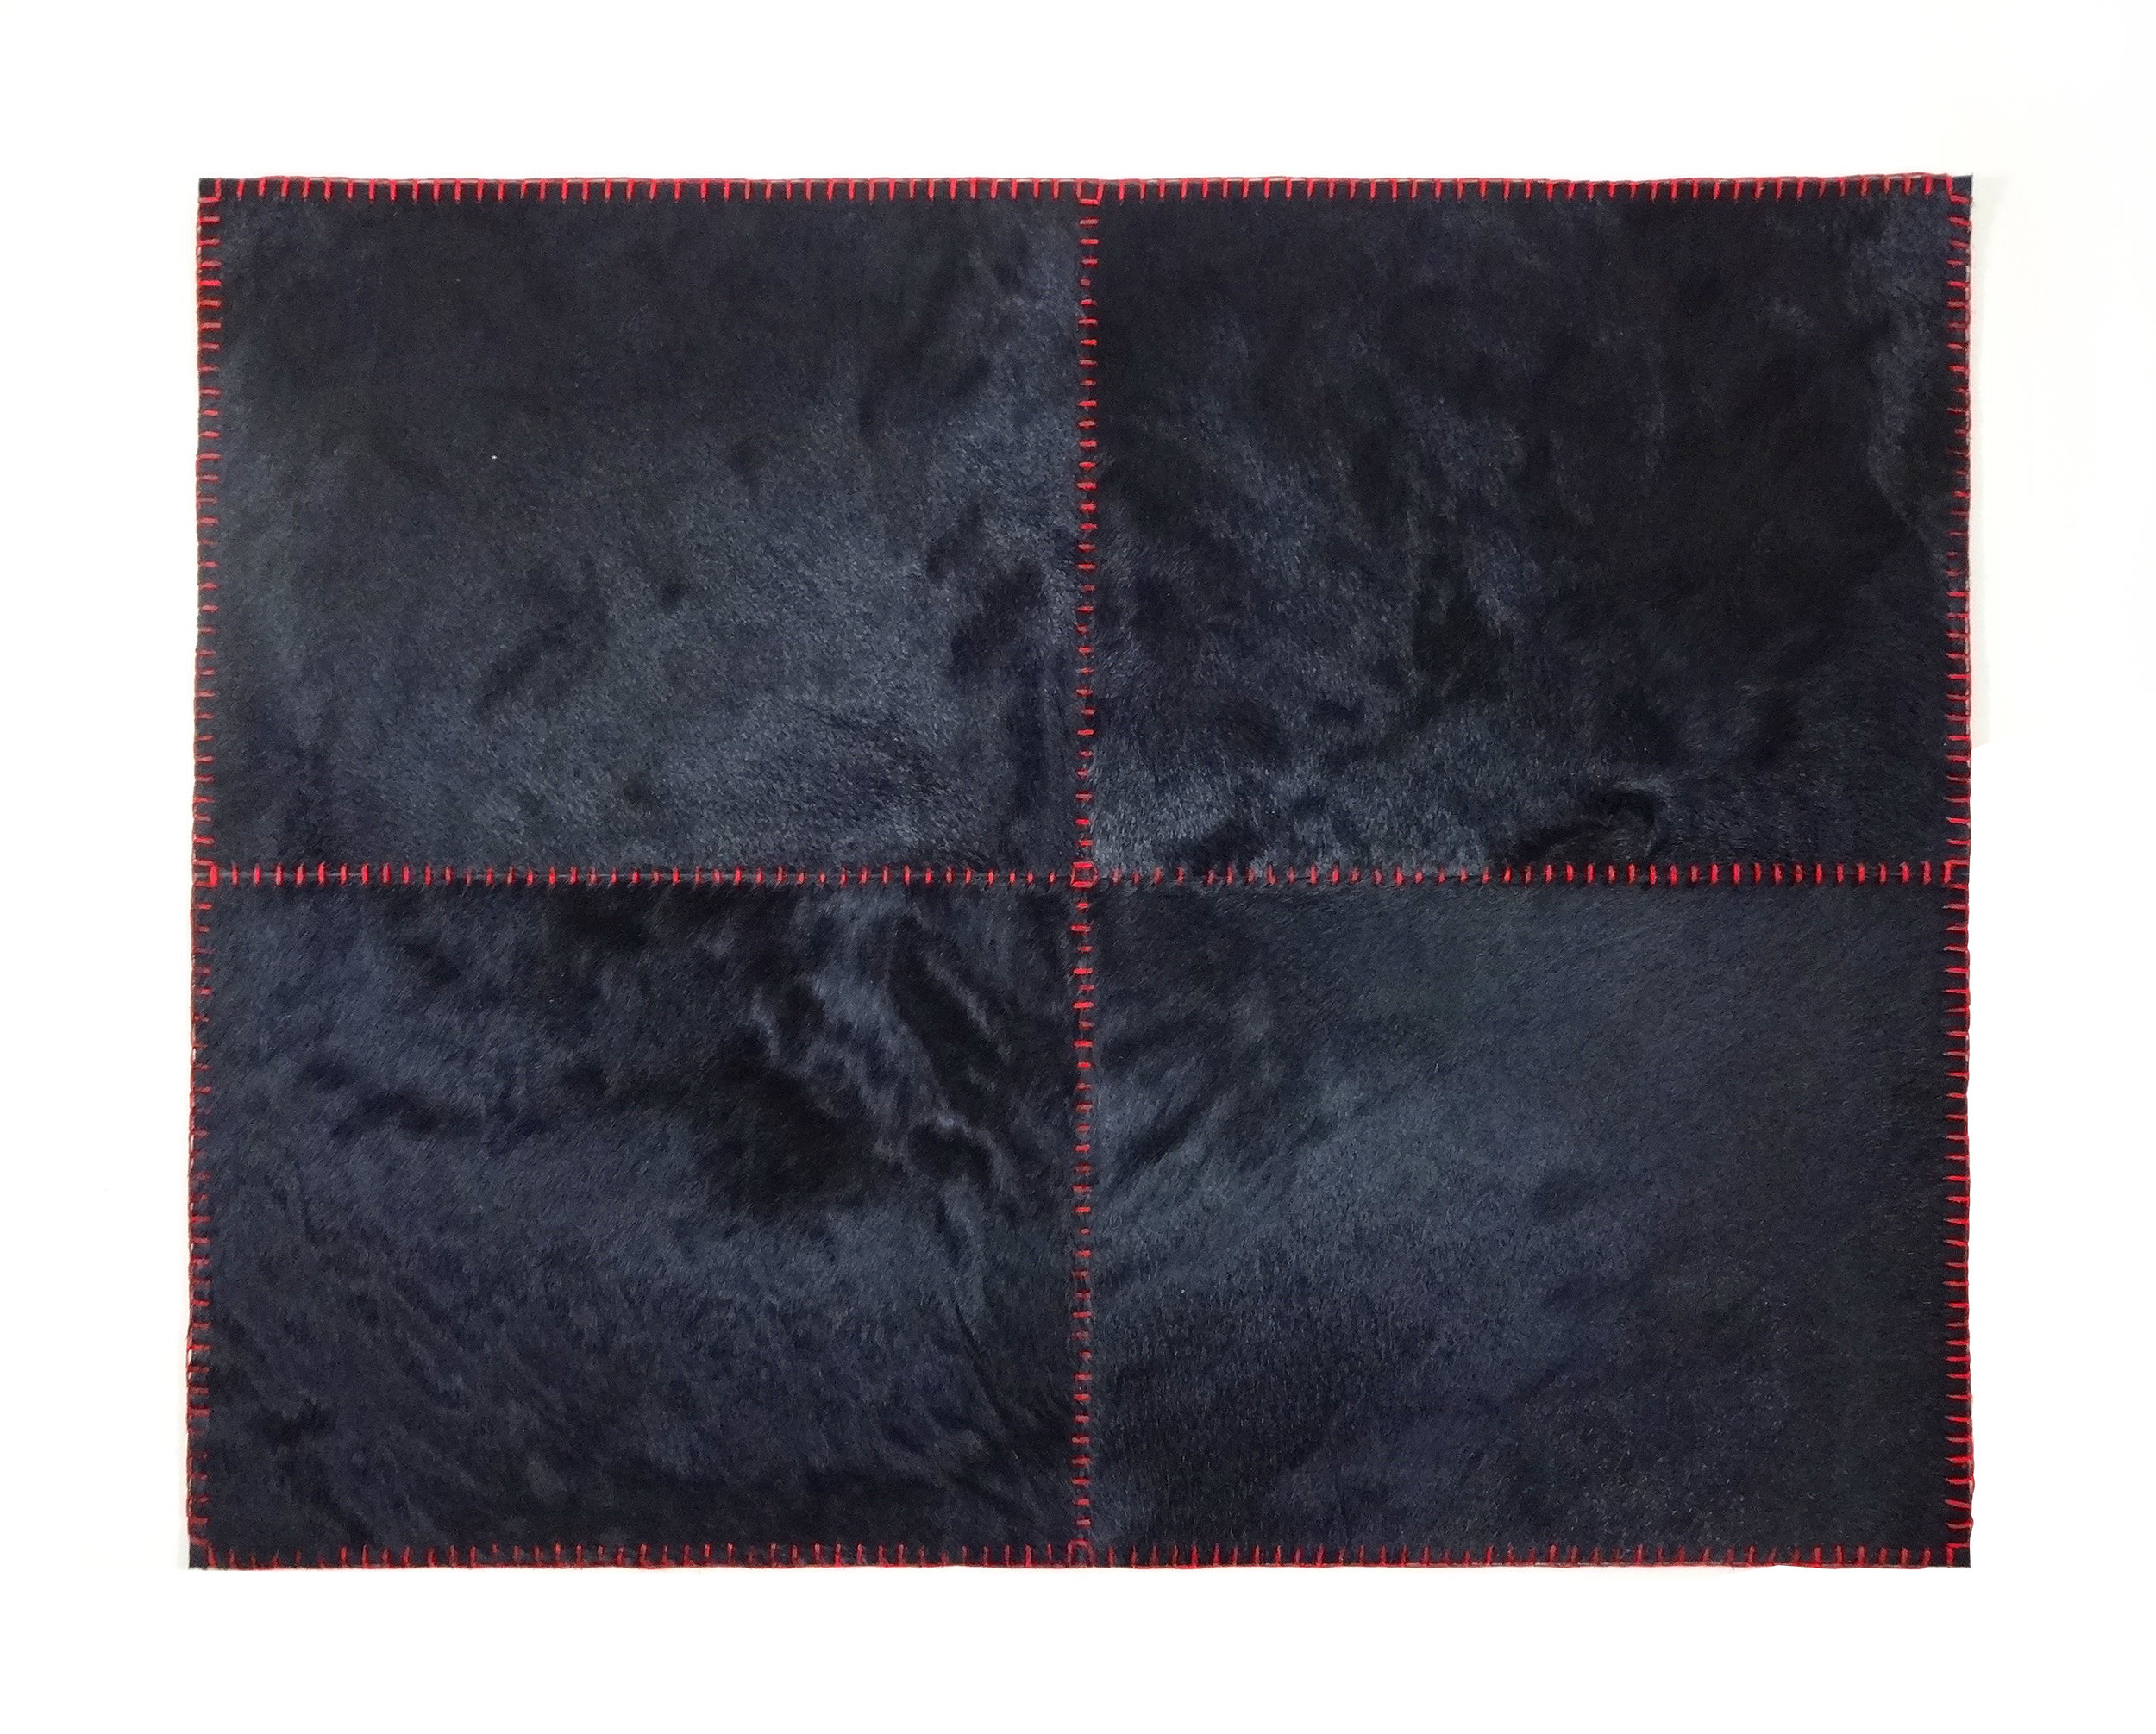 Stitched Black Cowhide